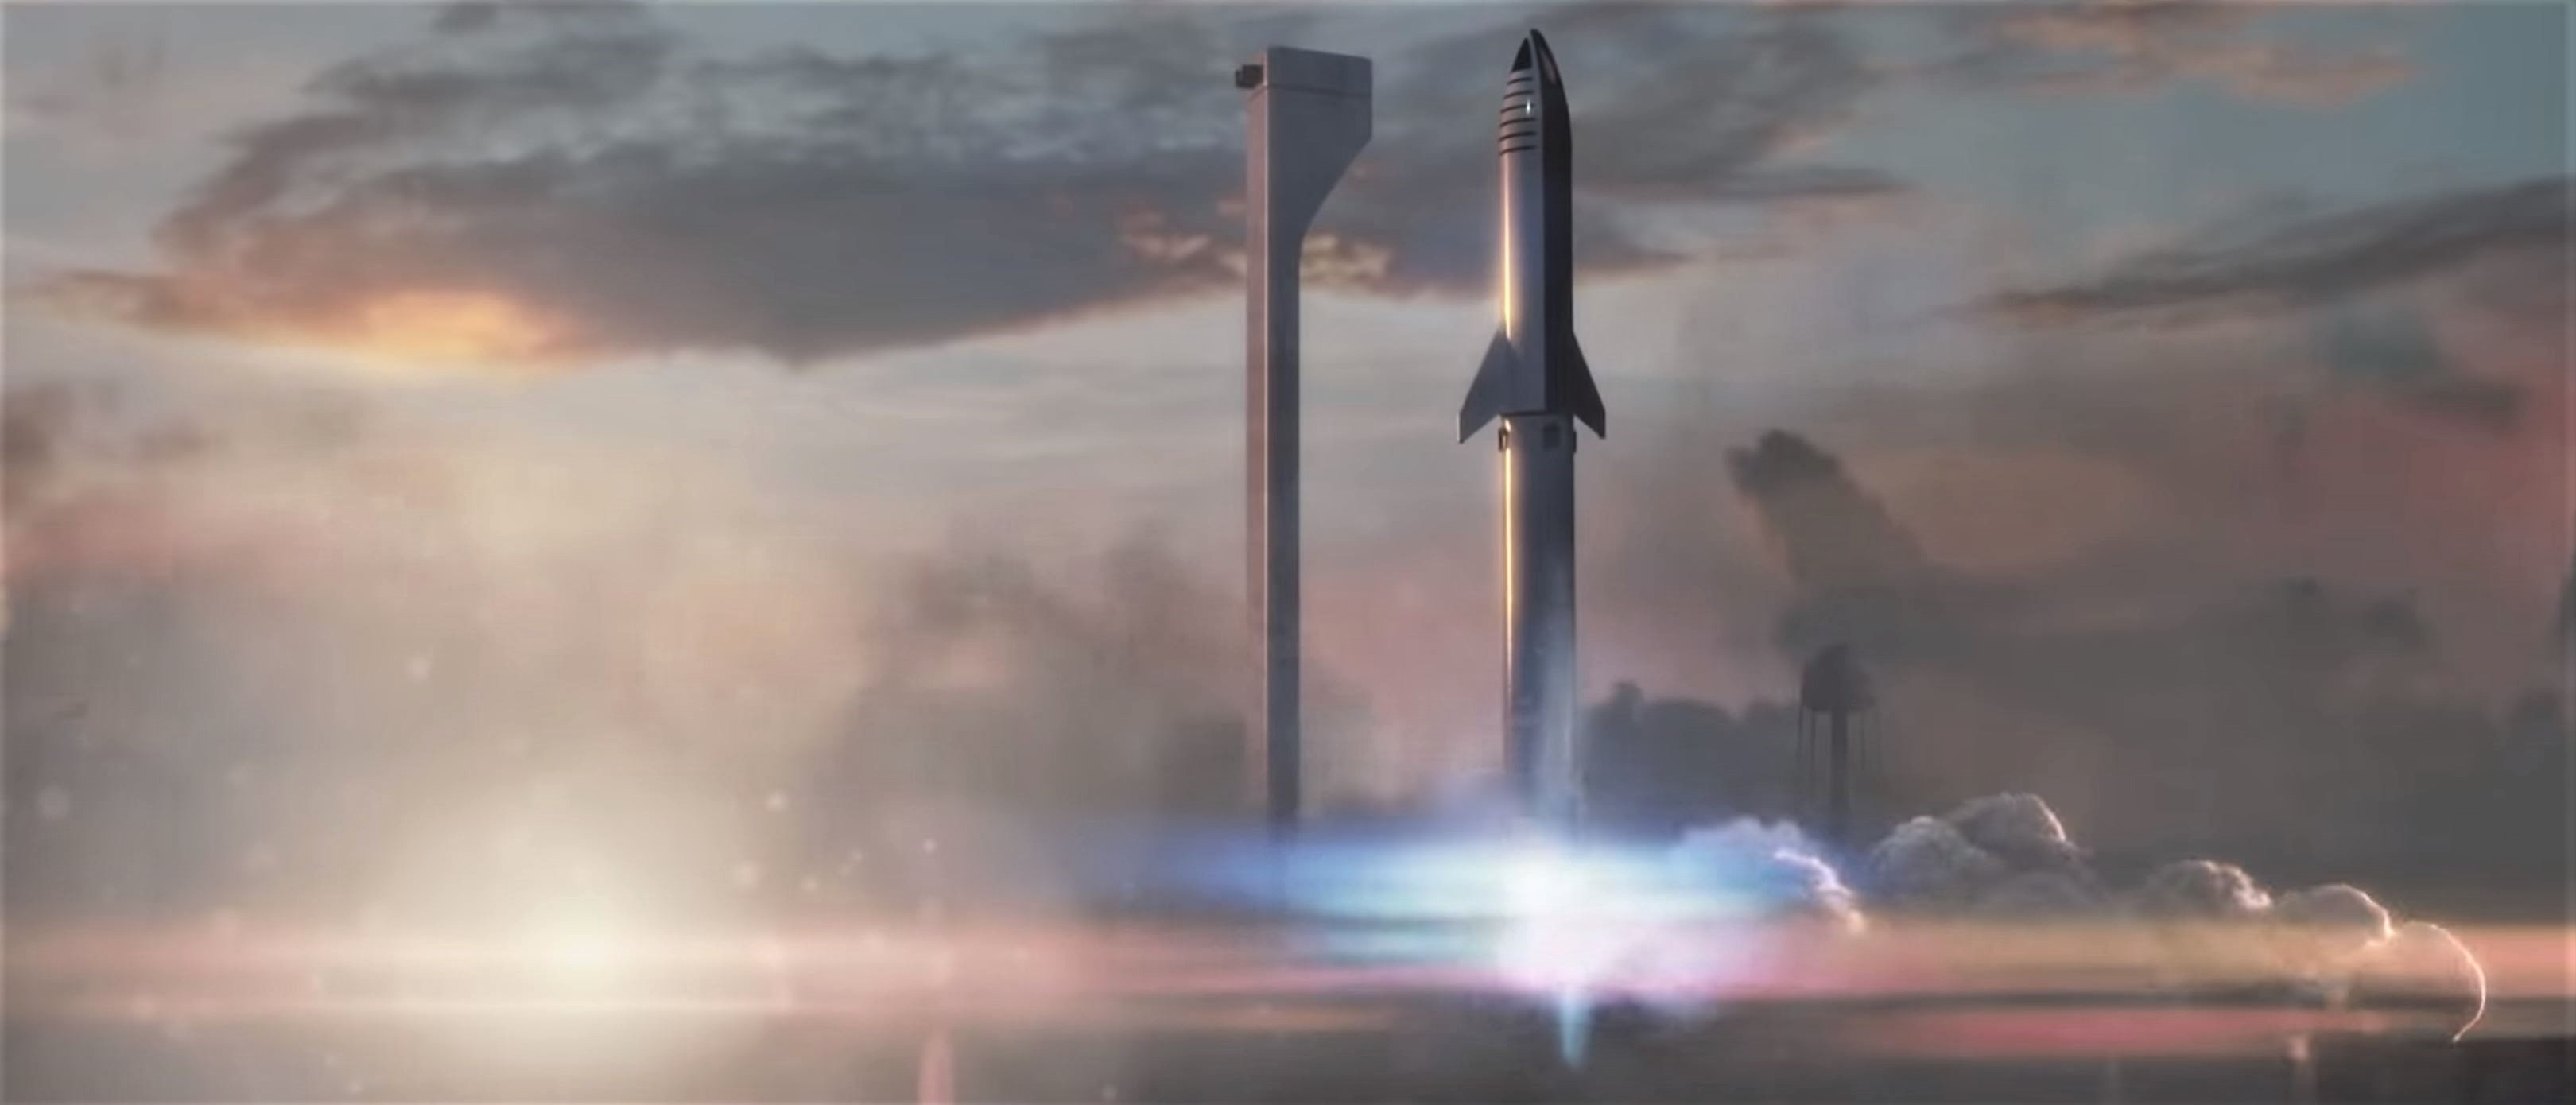 BFR 2018 launch render (SpaceX) 1